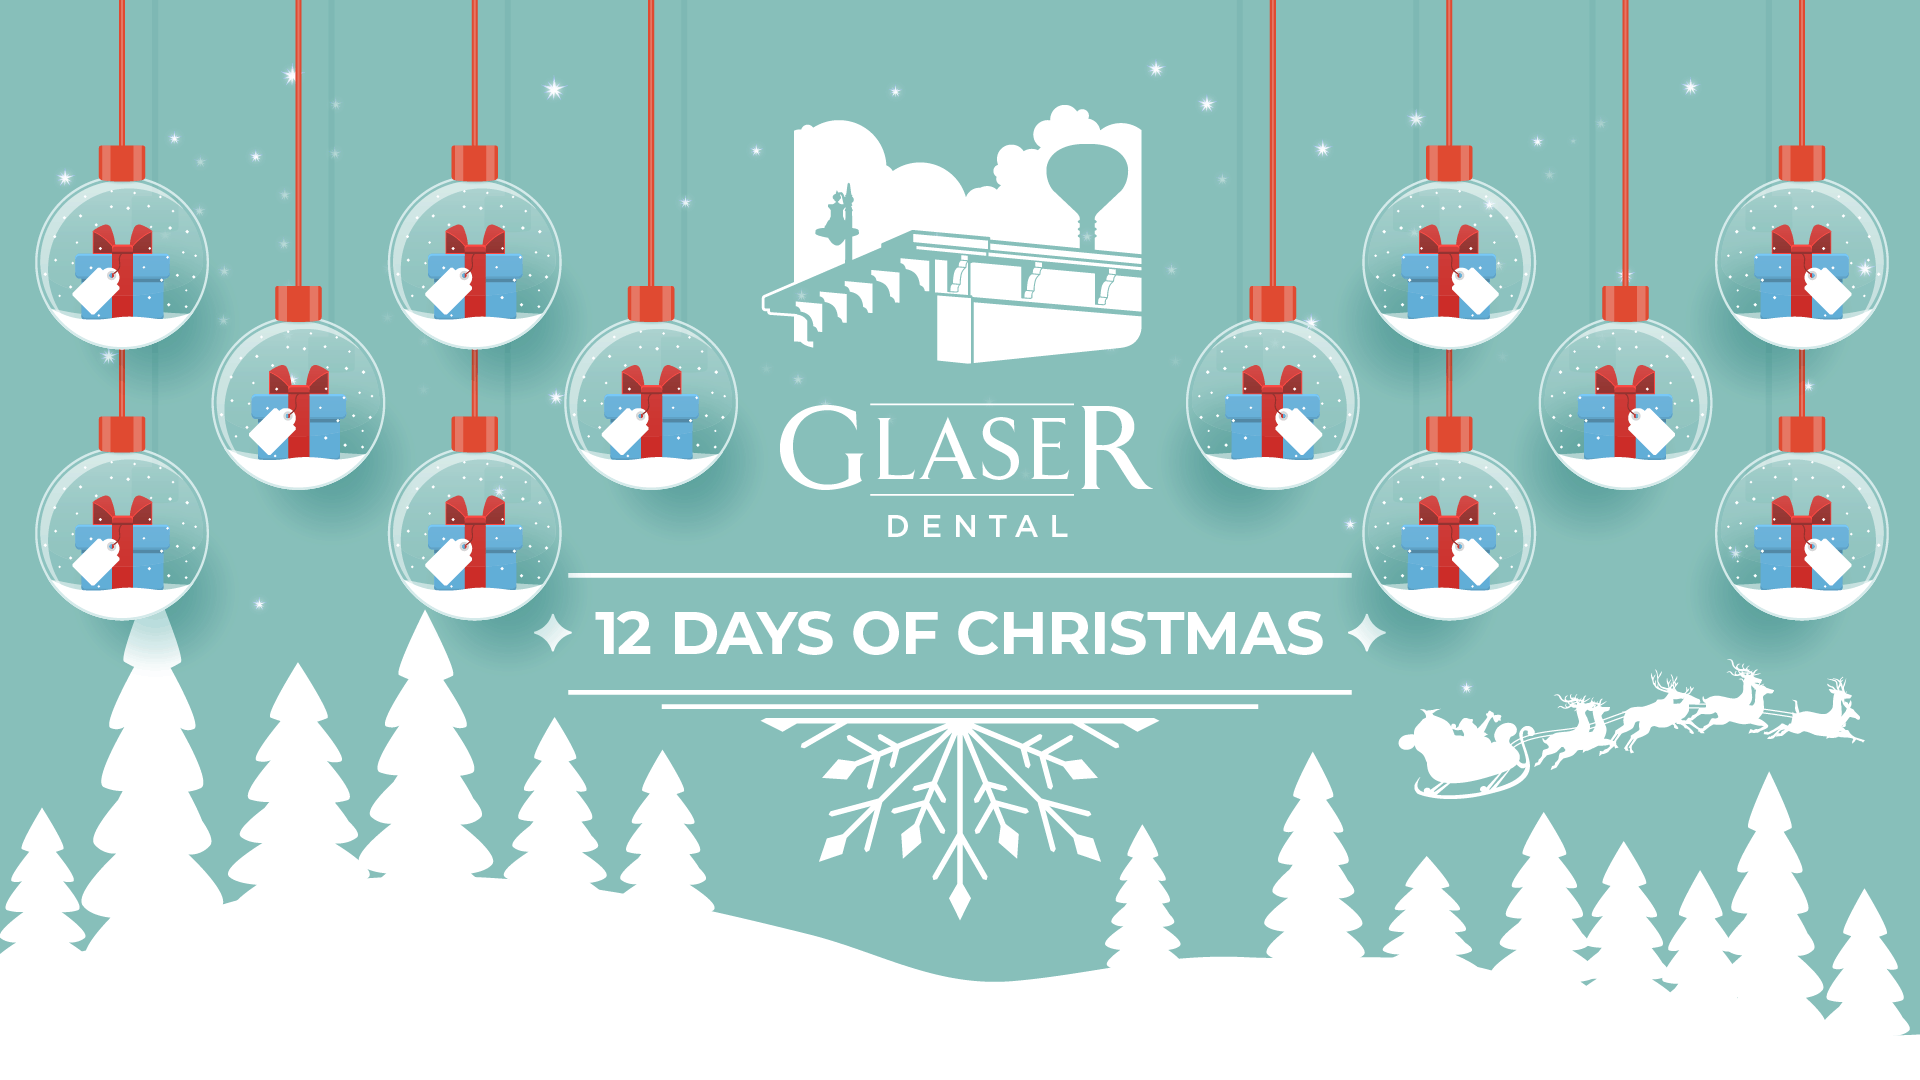 Glaser Dental - Services